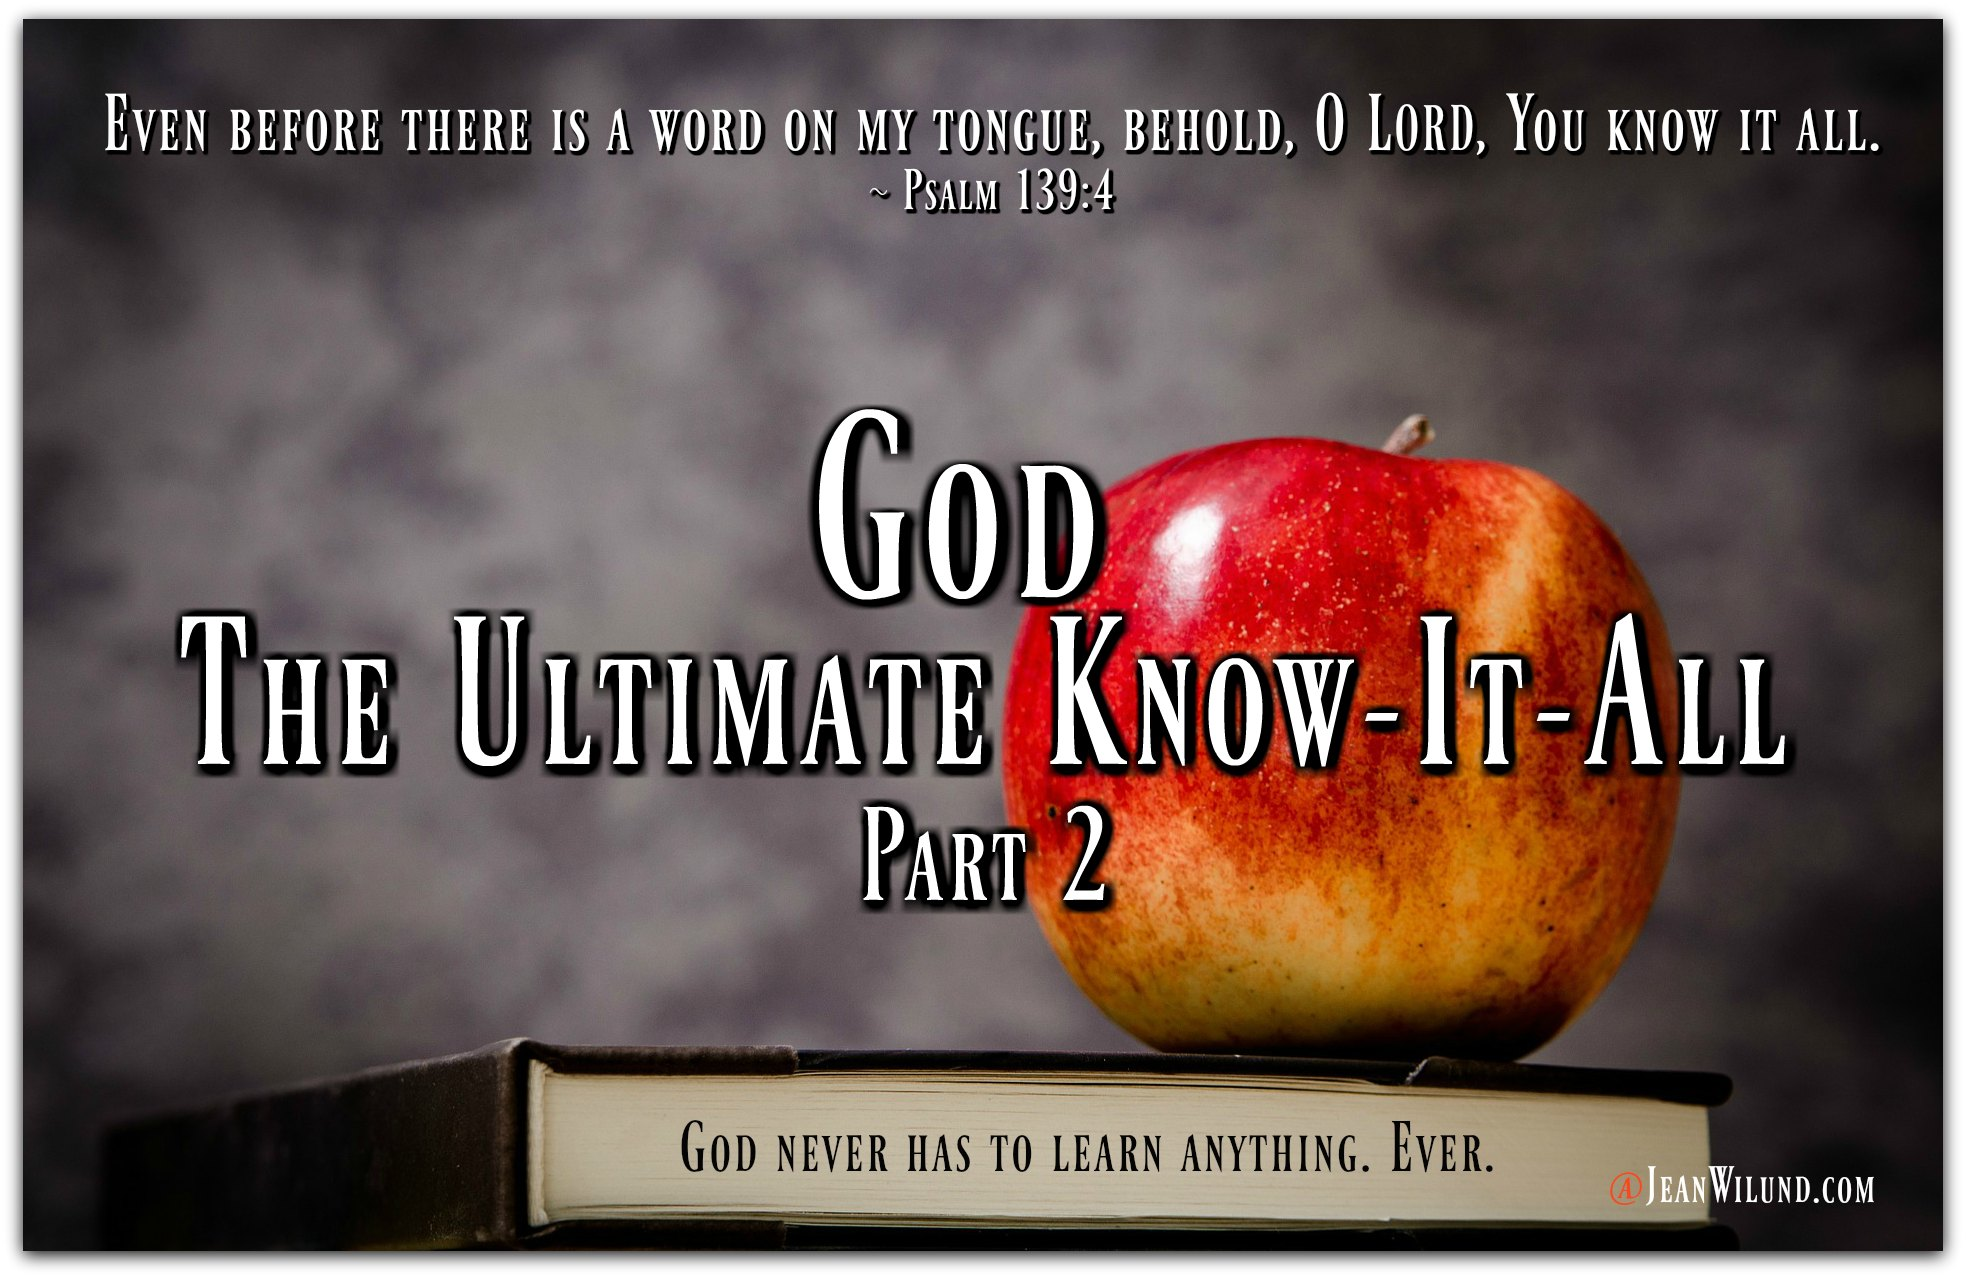 God - The Ultimate Know-It-All Part 2 (From the Never-Ending, Ever-Growing List of the Character Traits of God) via www.JeanWilund.com